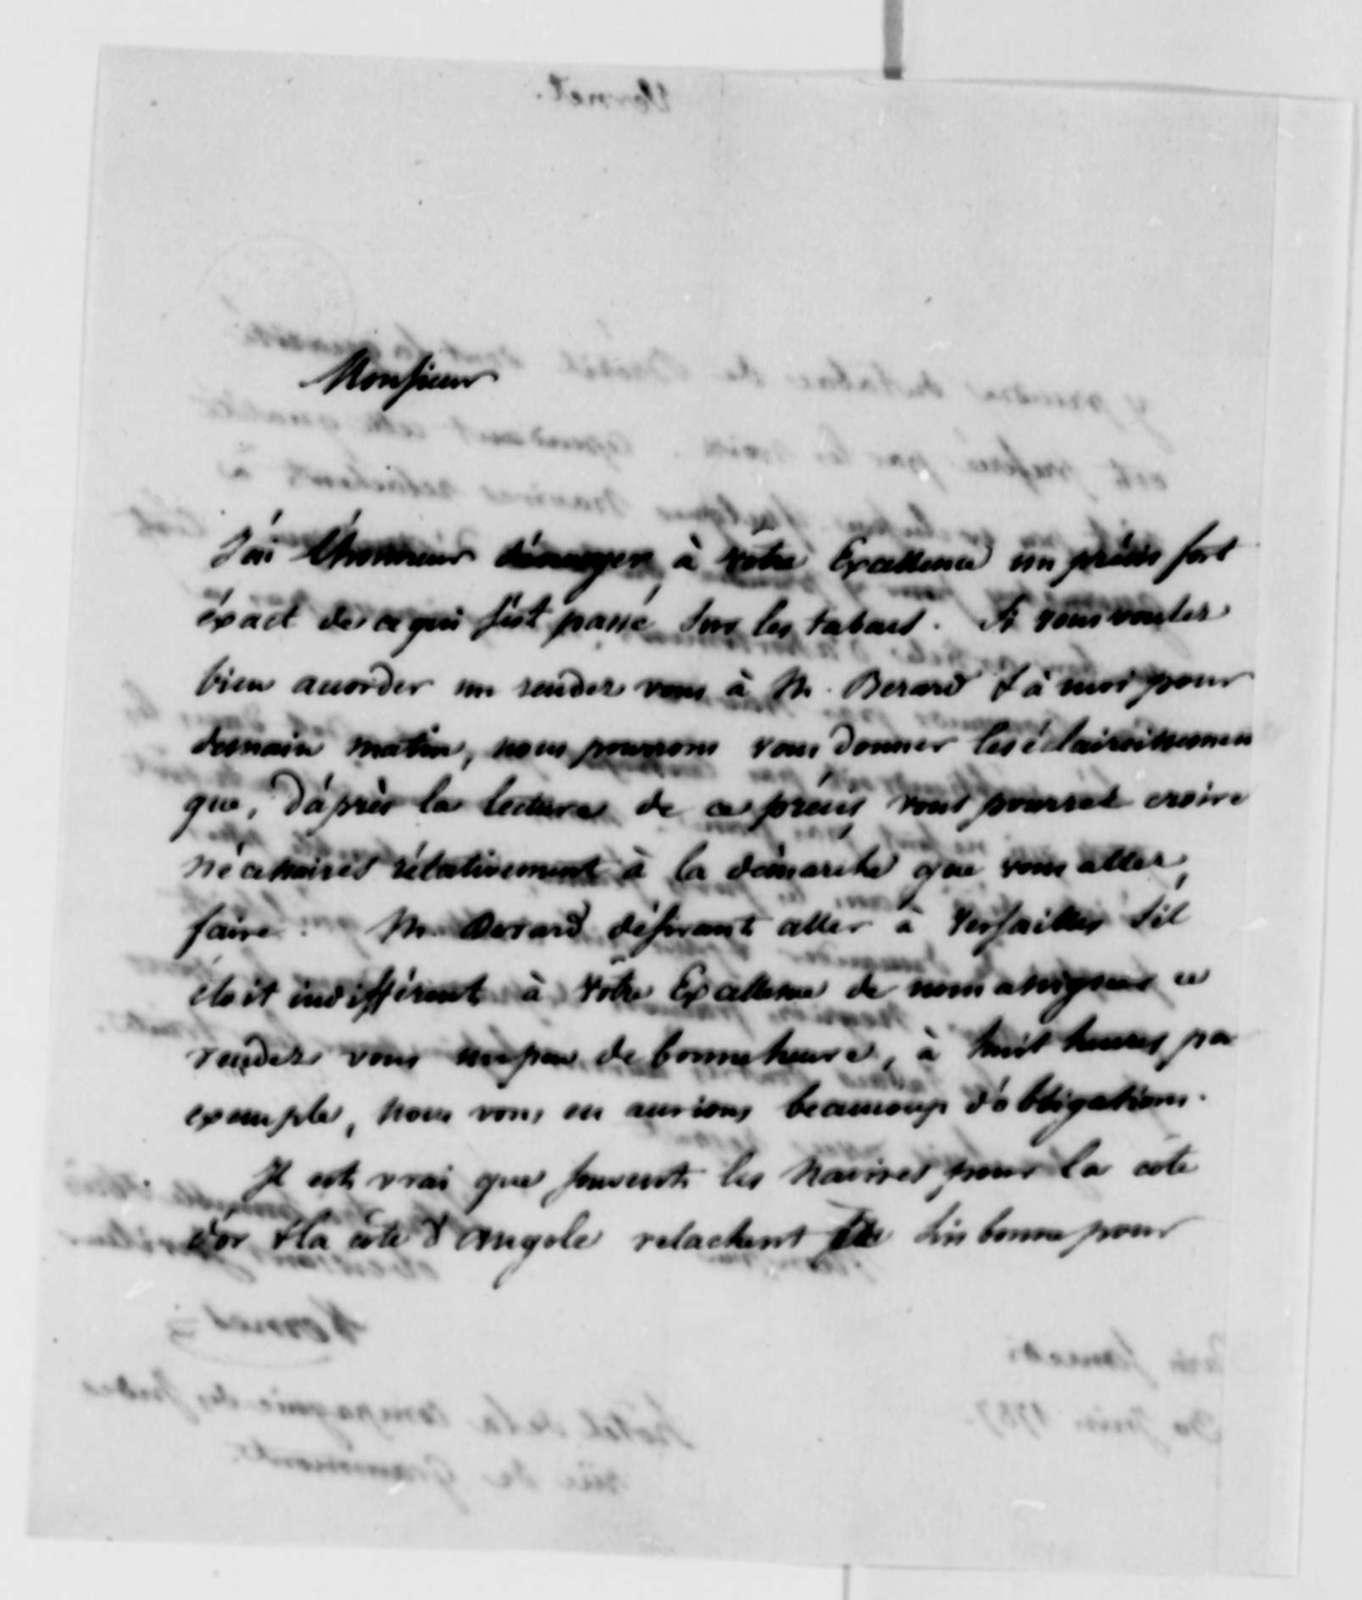 Jacob Vernes to Thomas Jefferson, June 30, 1787, in French